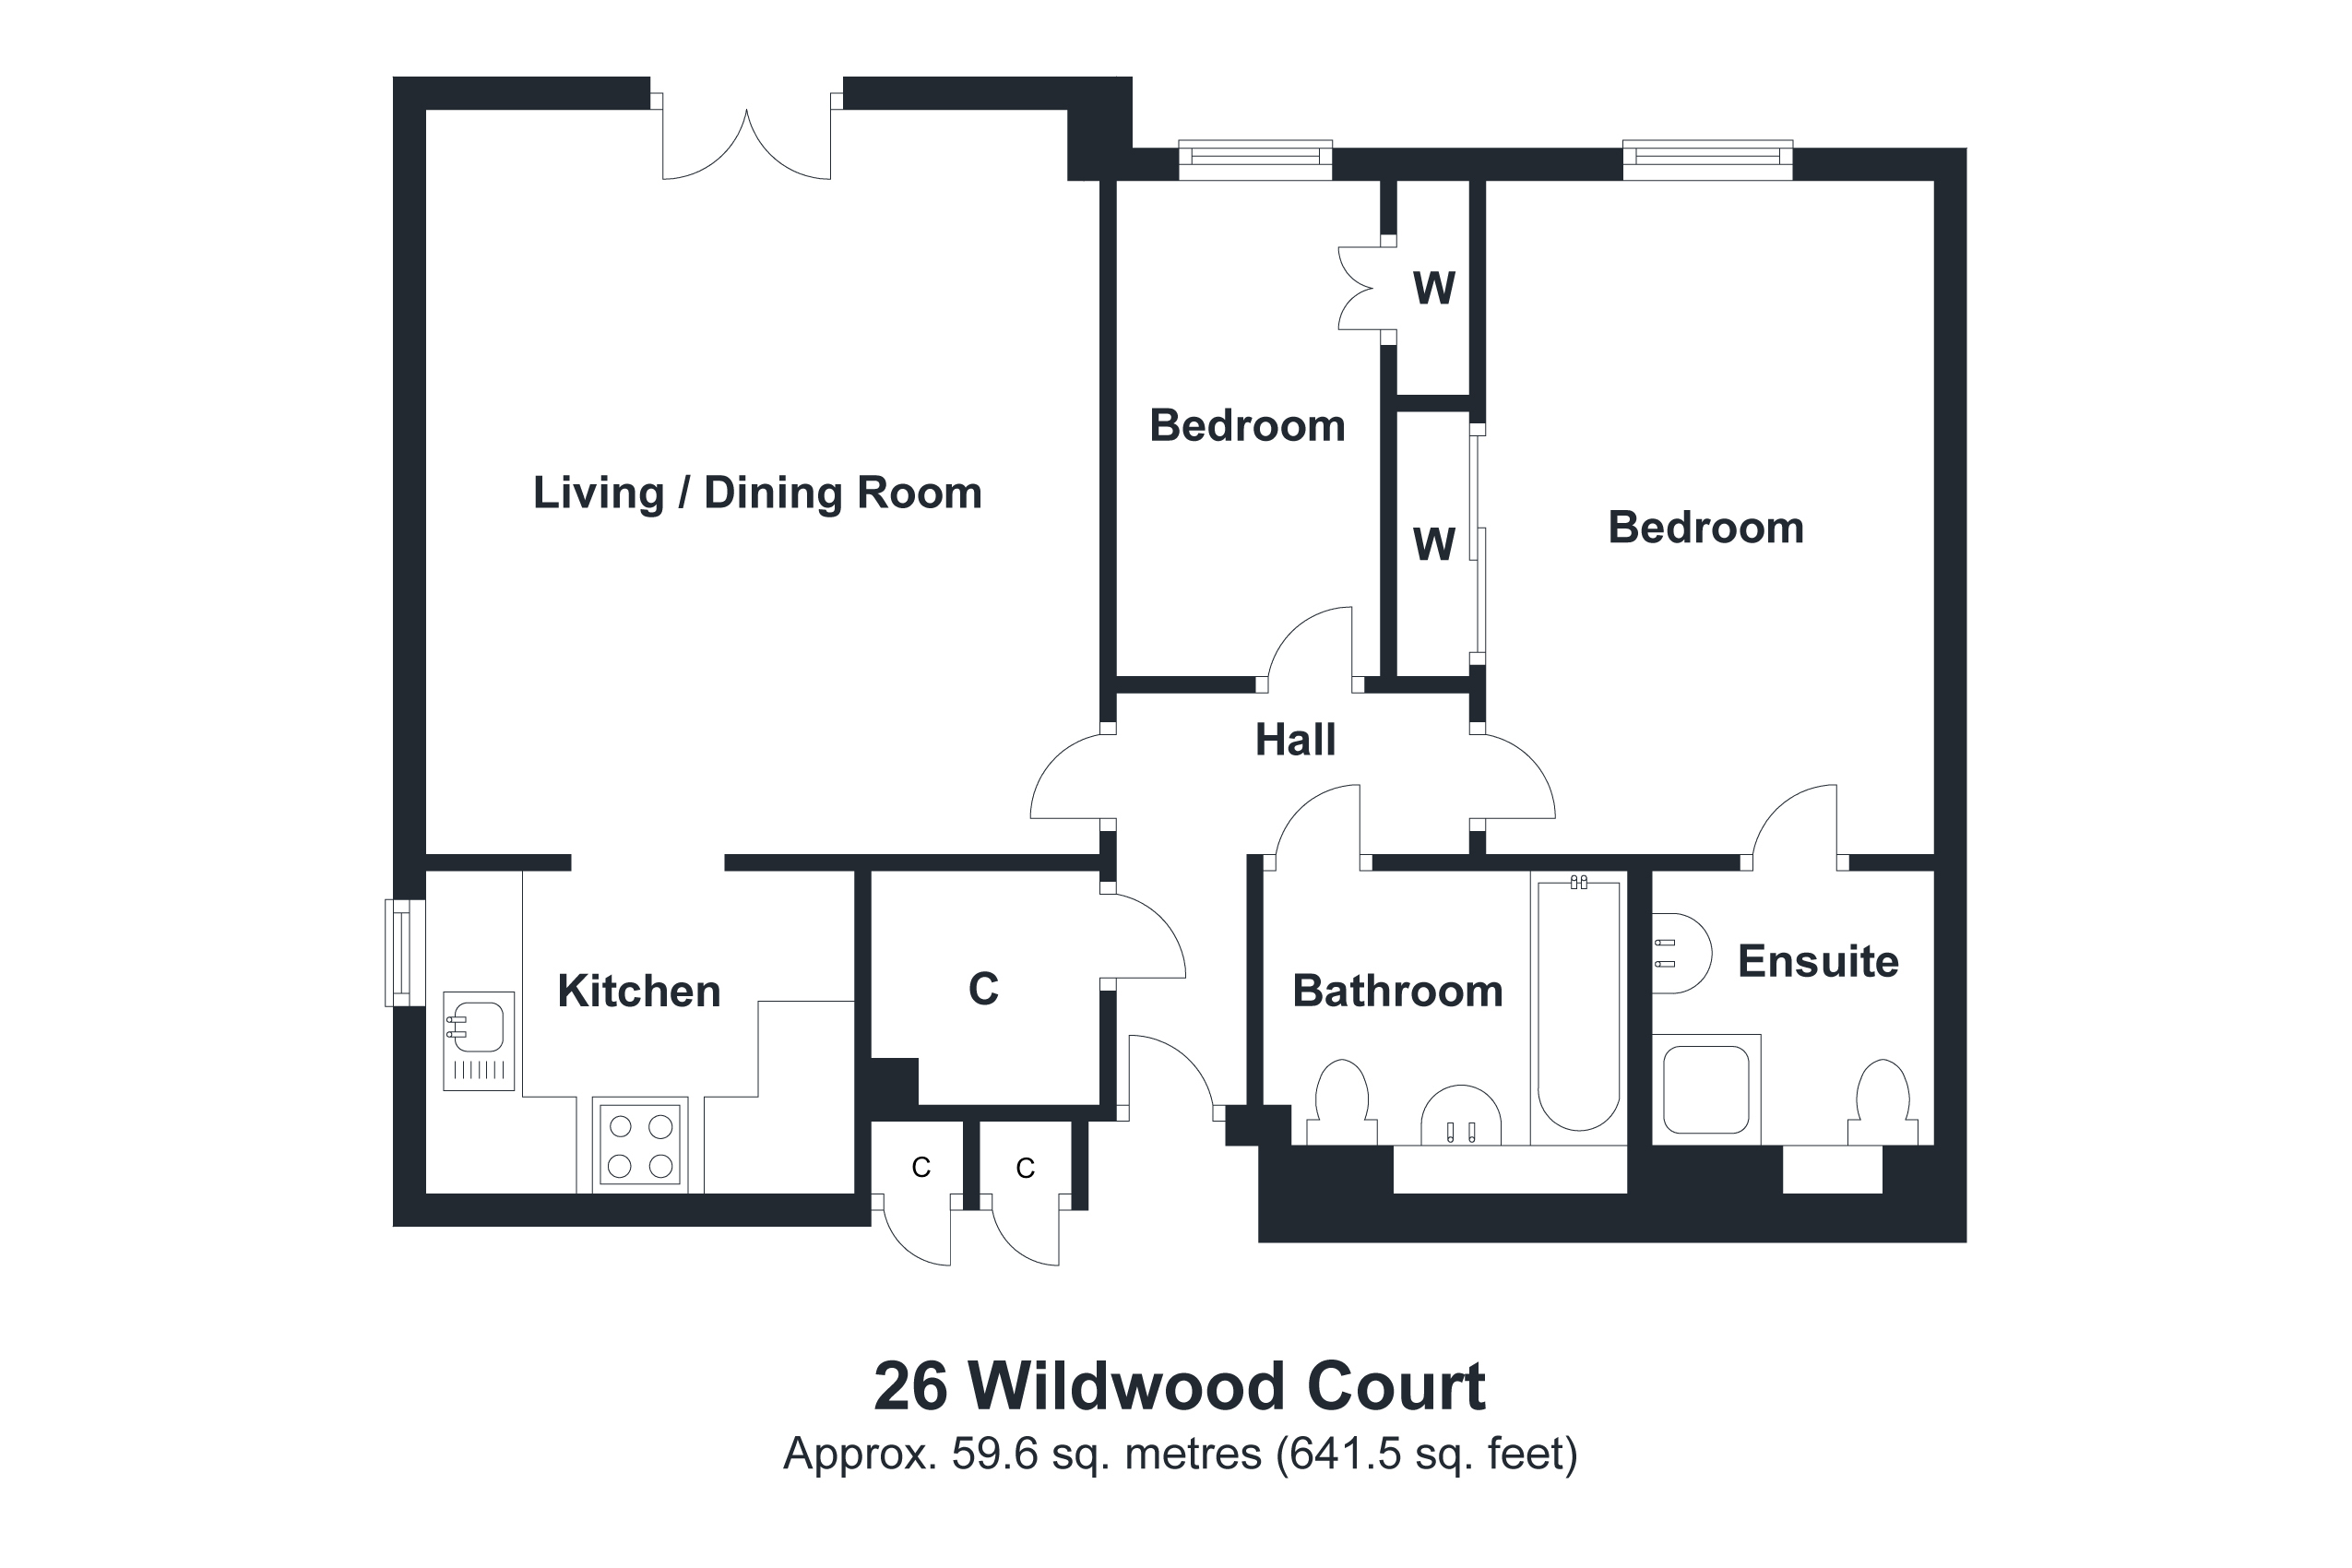 26 Wildwood Court Floorplan